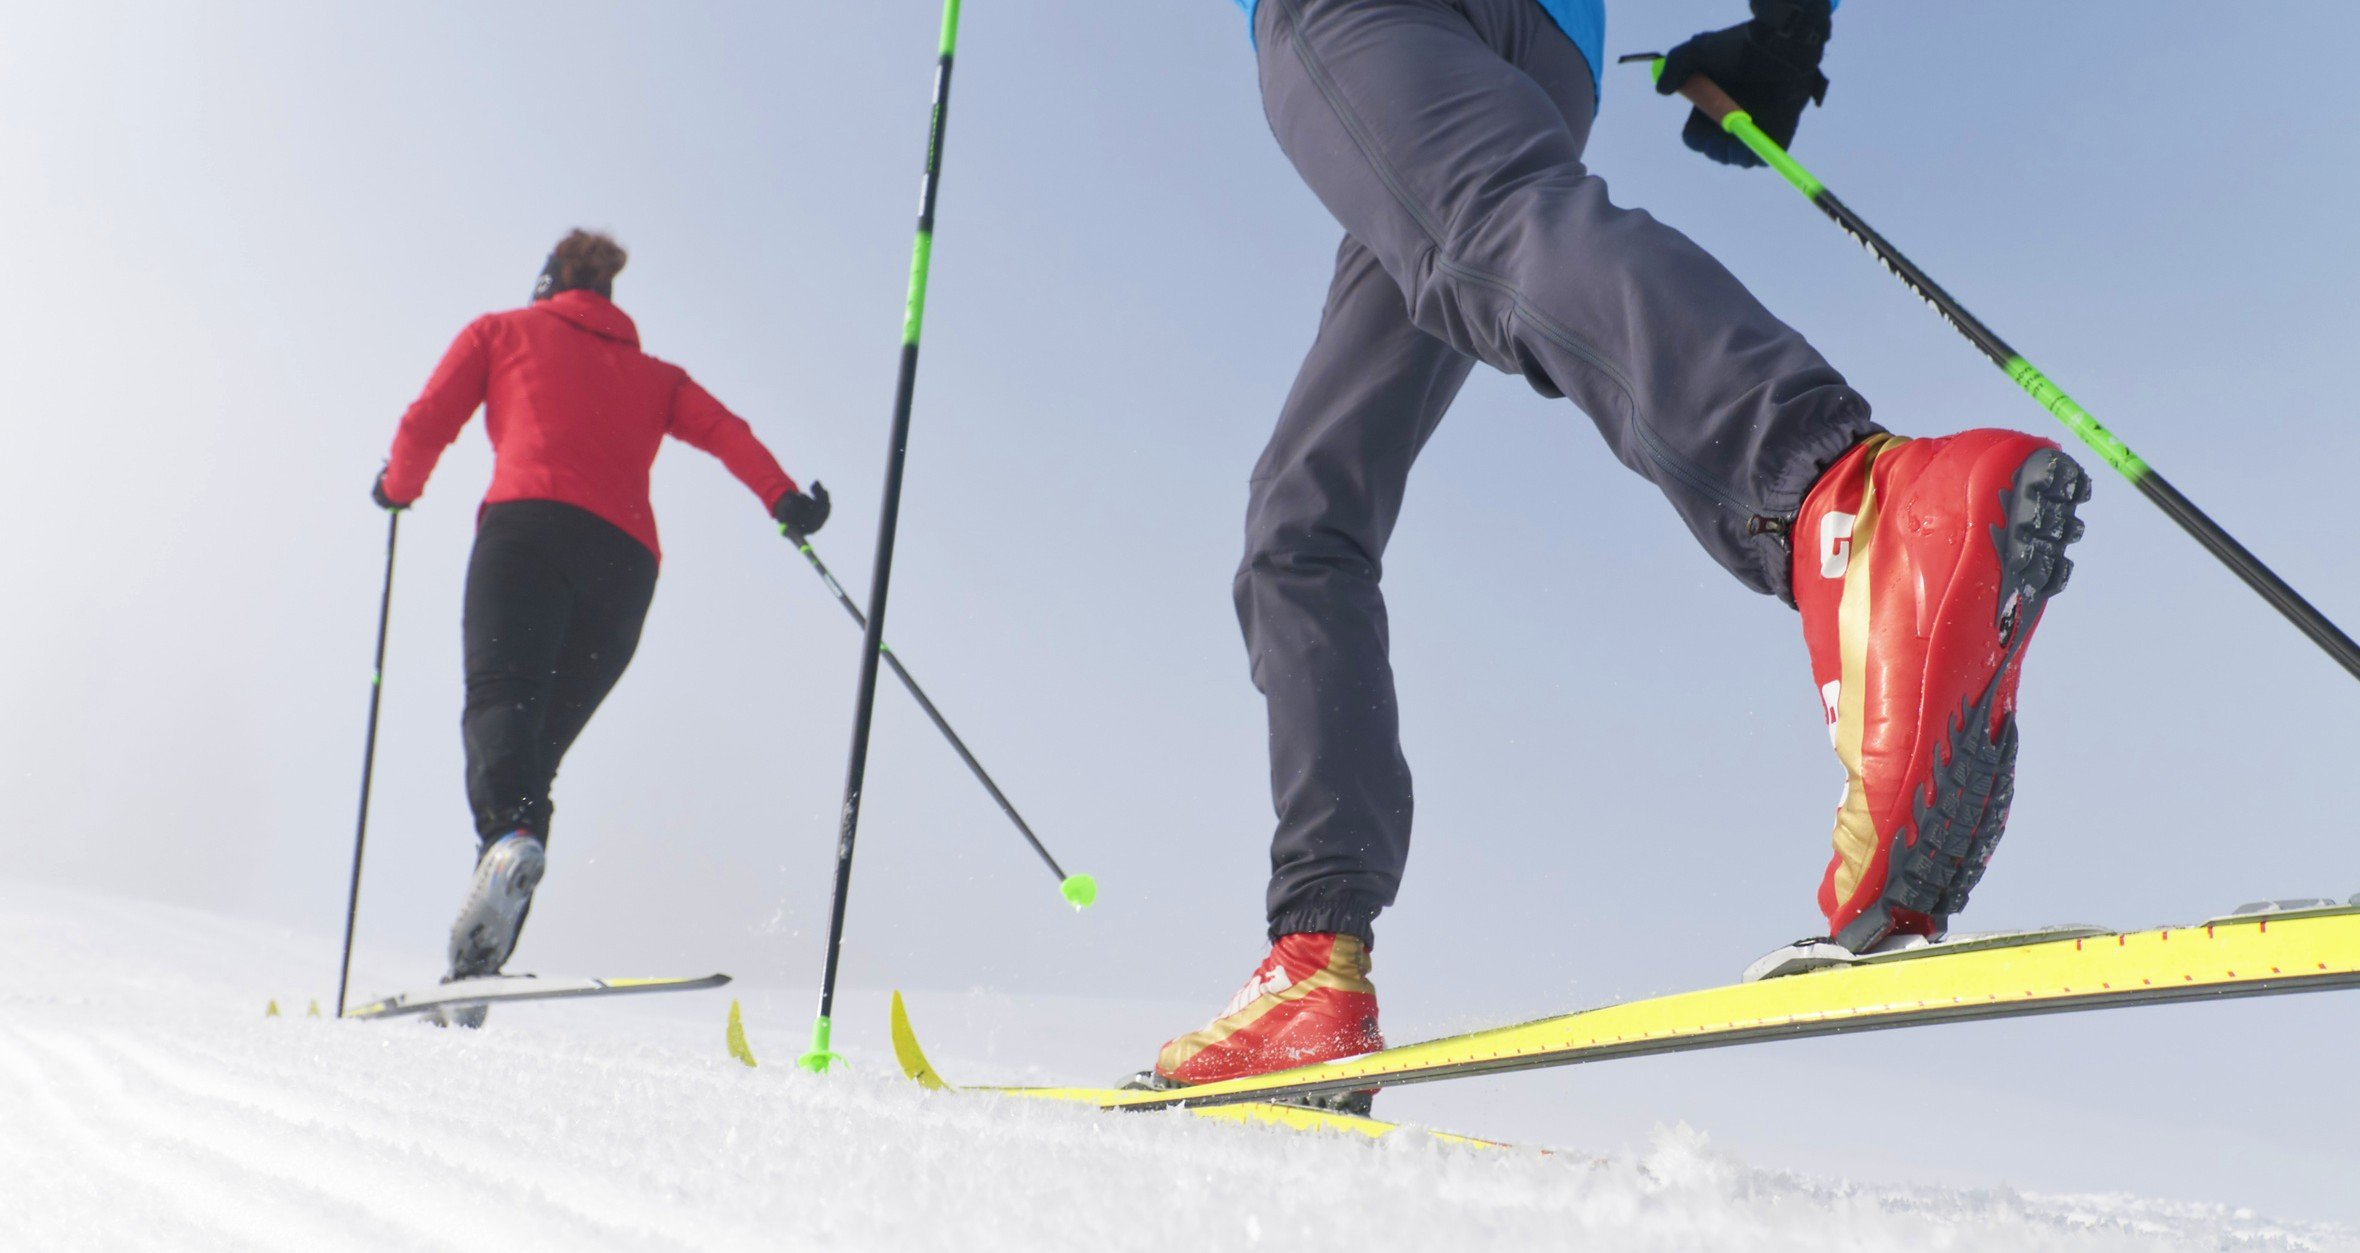 Two skiers go on a ski tour.